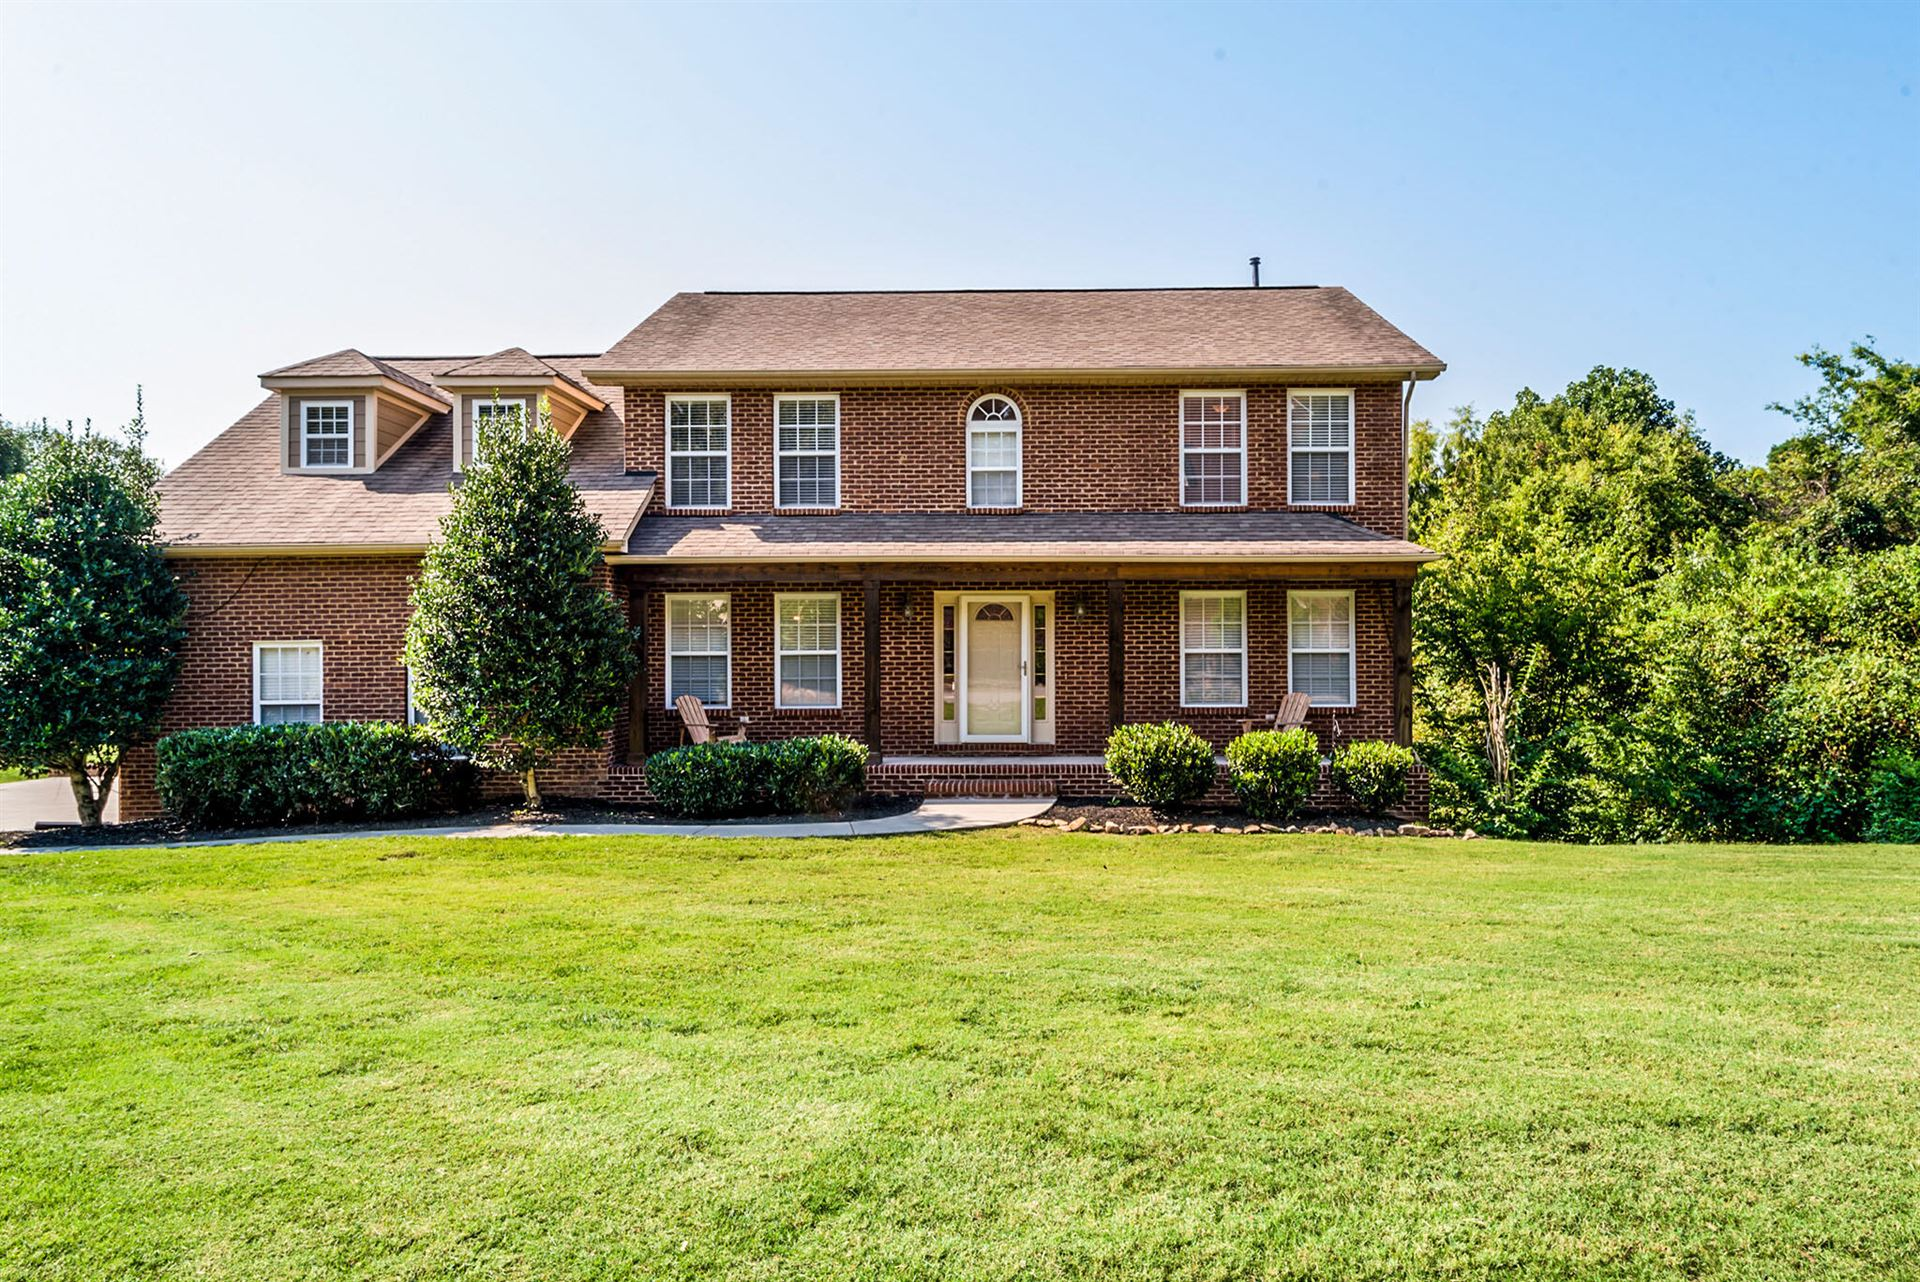 Photo of 2005 Shady Hollow Lane, Knoxville, TN 37922 (MLS # 1167830)